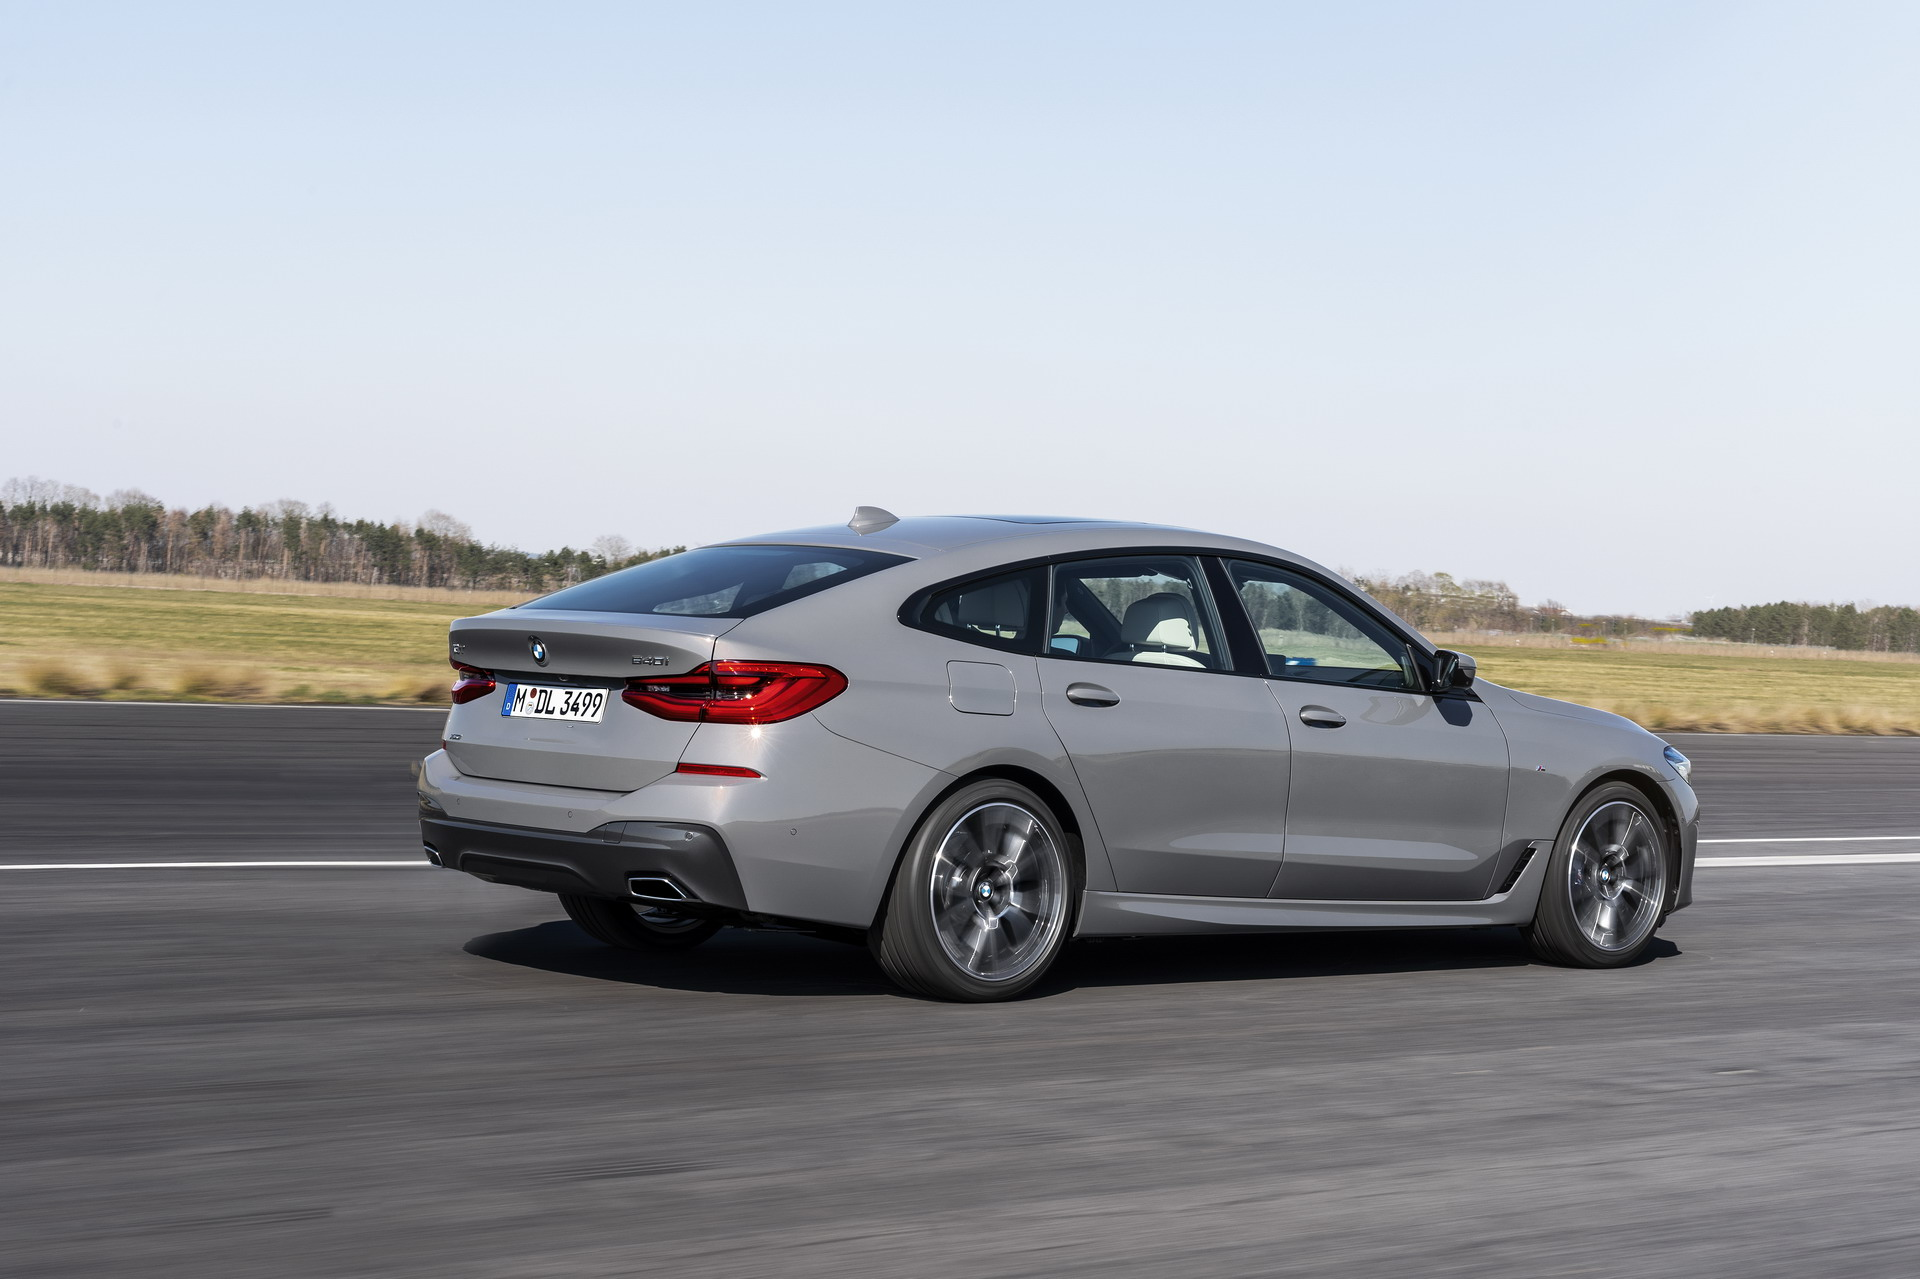 The New BMW 640i xDrive GT G32 LCI 2